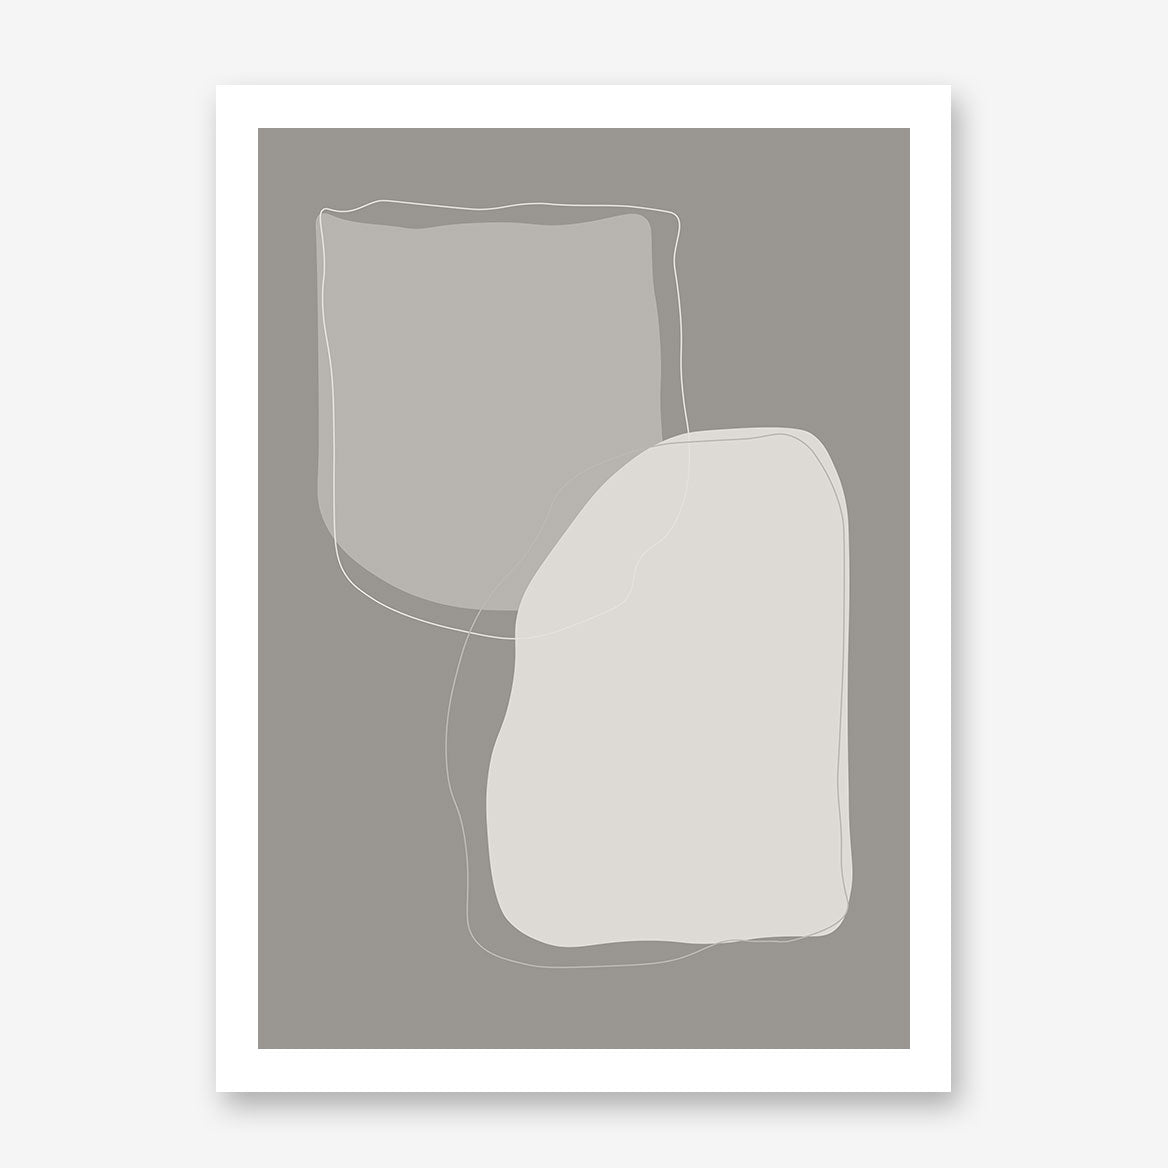 Abstract poster print with grey shapes and background.